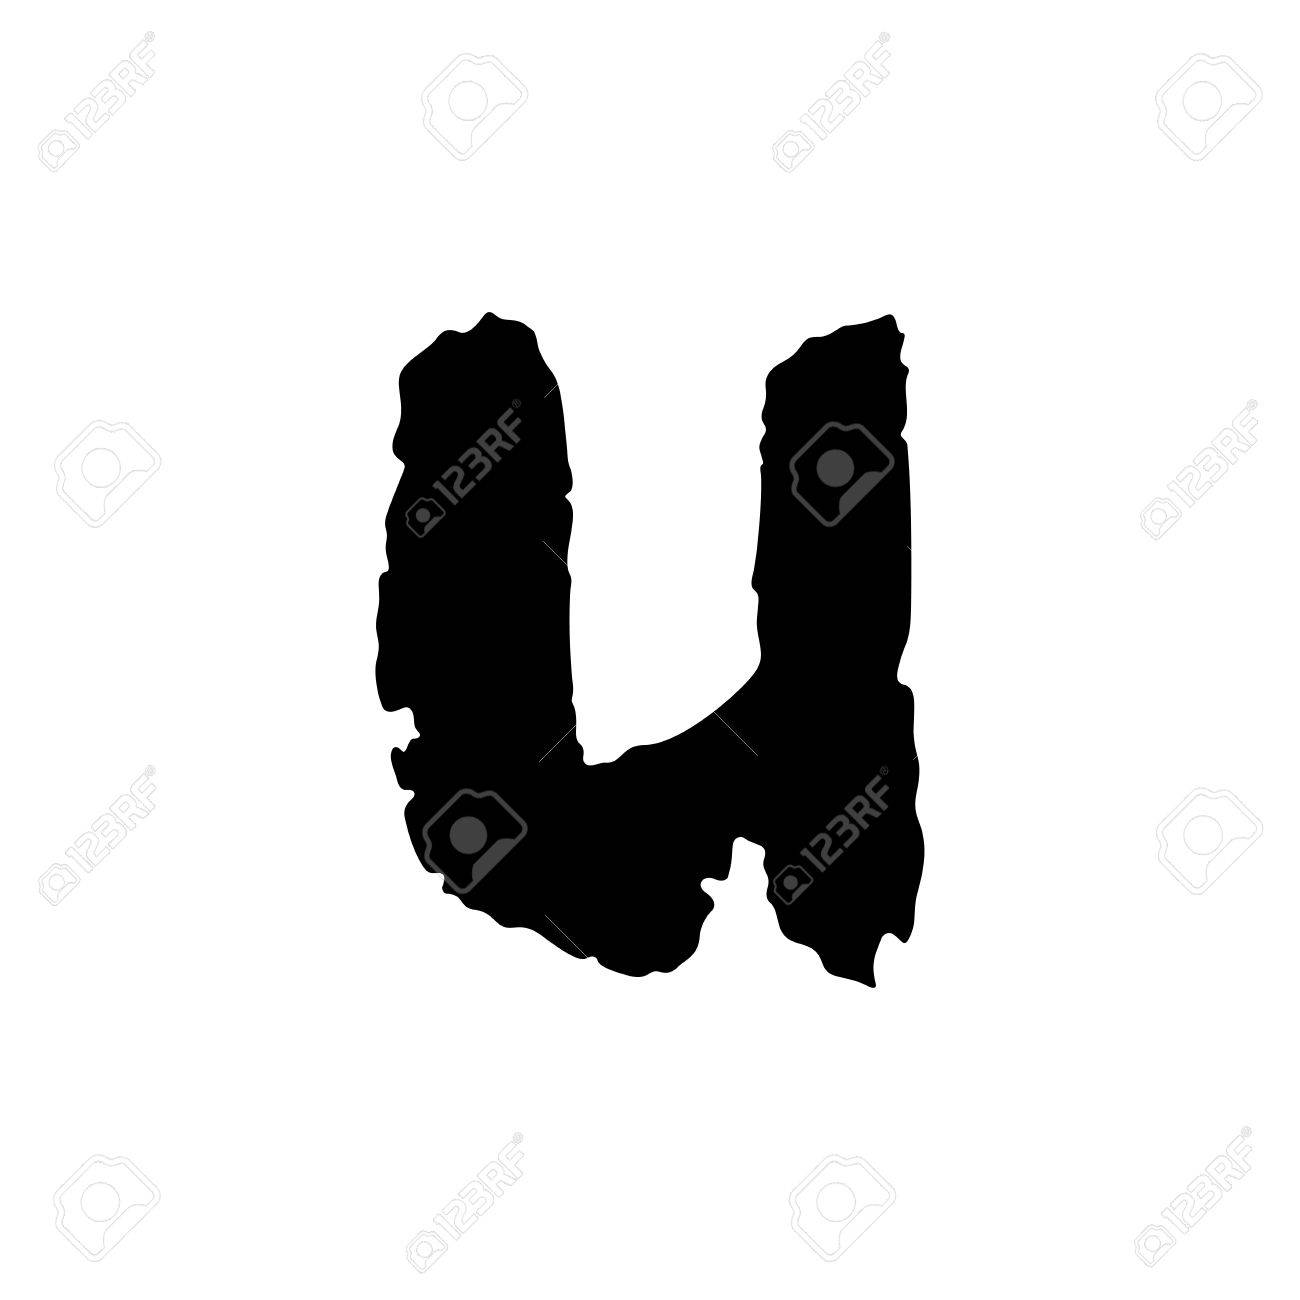 Vector Hand Drawn Letter U With Smooth Acrylic Brush Style Edges